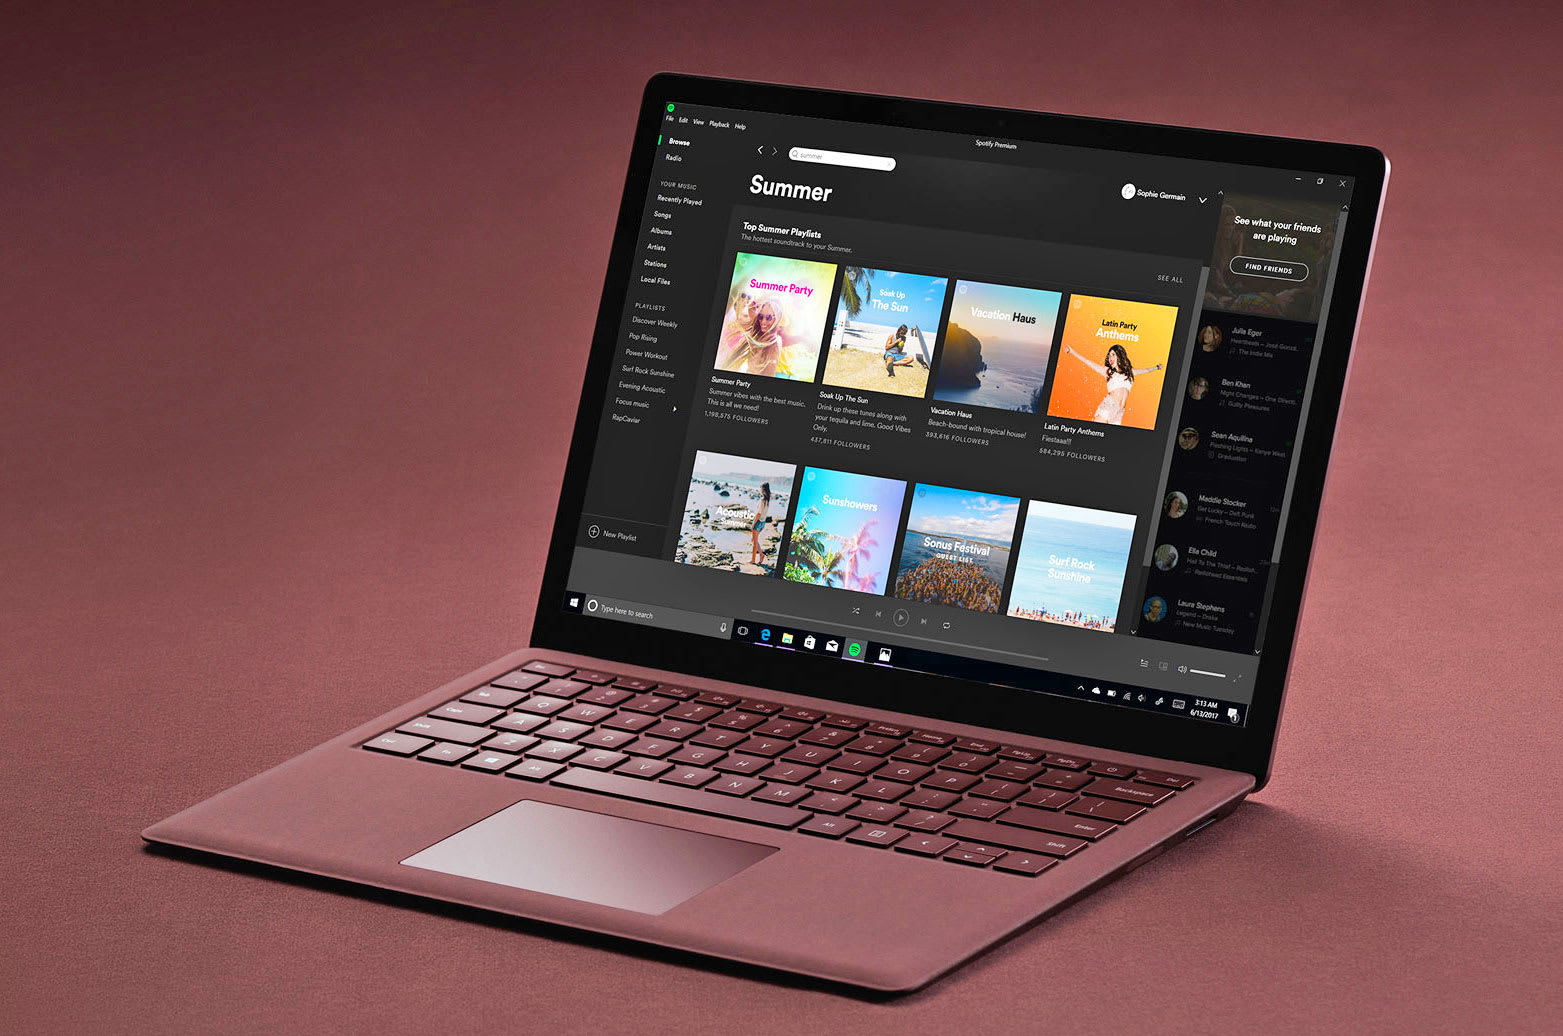 Spotify beats iTunes to the Windows Store